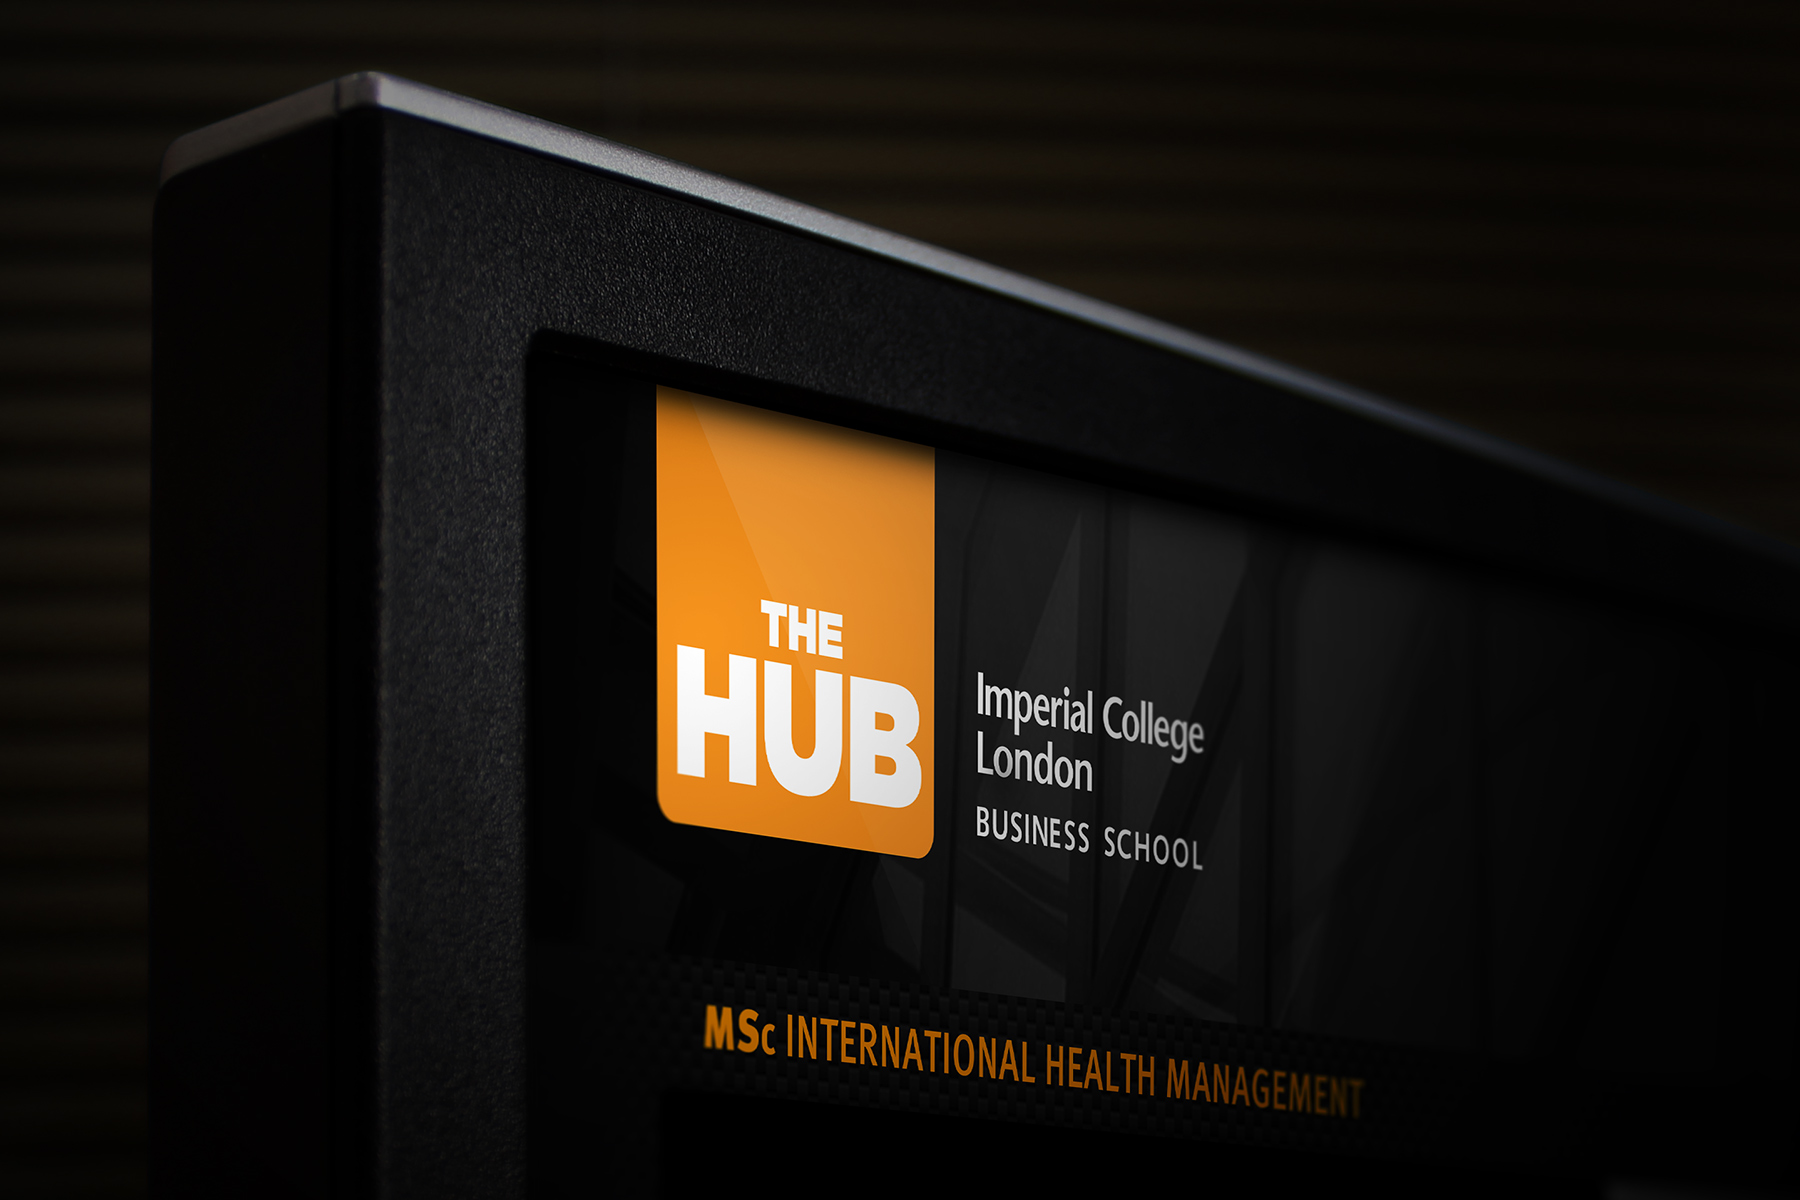 We were briefed to design the UX and environment for a student portal called the Hub. It was to be used across multiple platforms and environments.